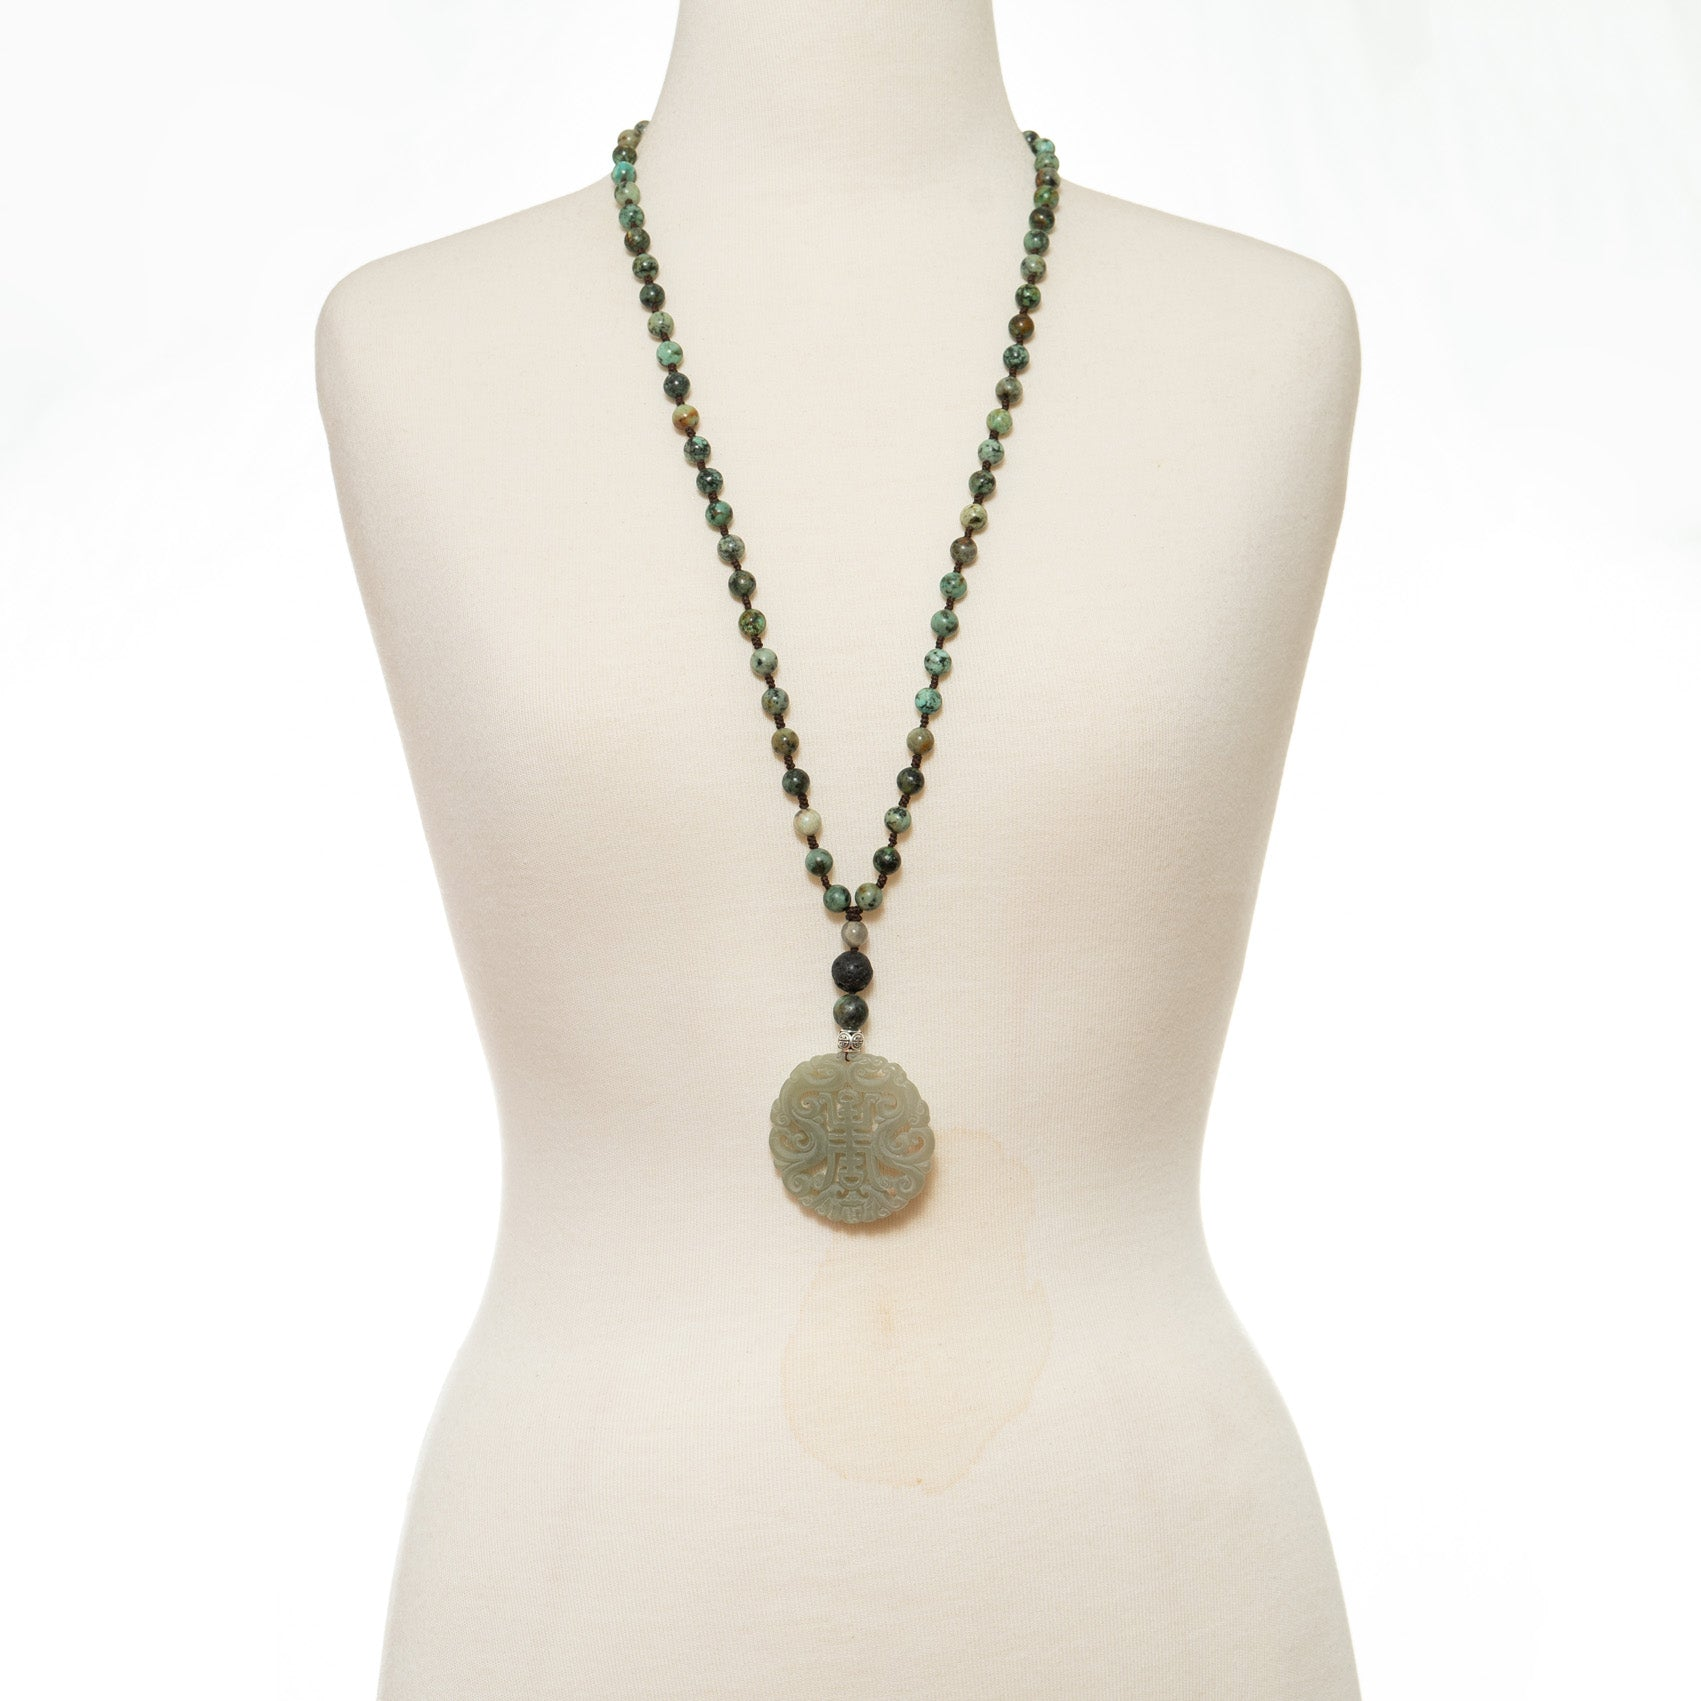 Most Happy Jade Green Stone Long Necklace | Stones that Rock